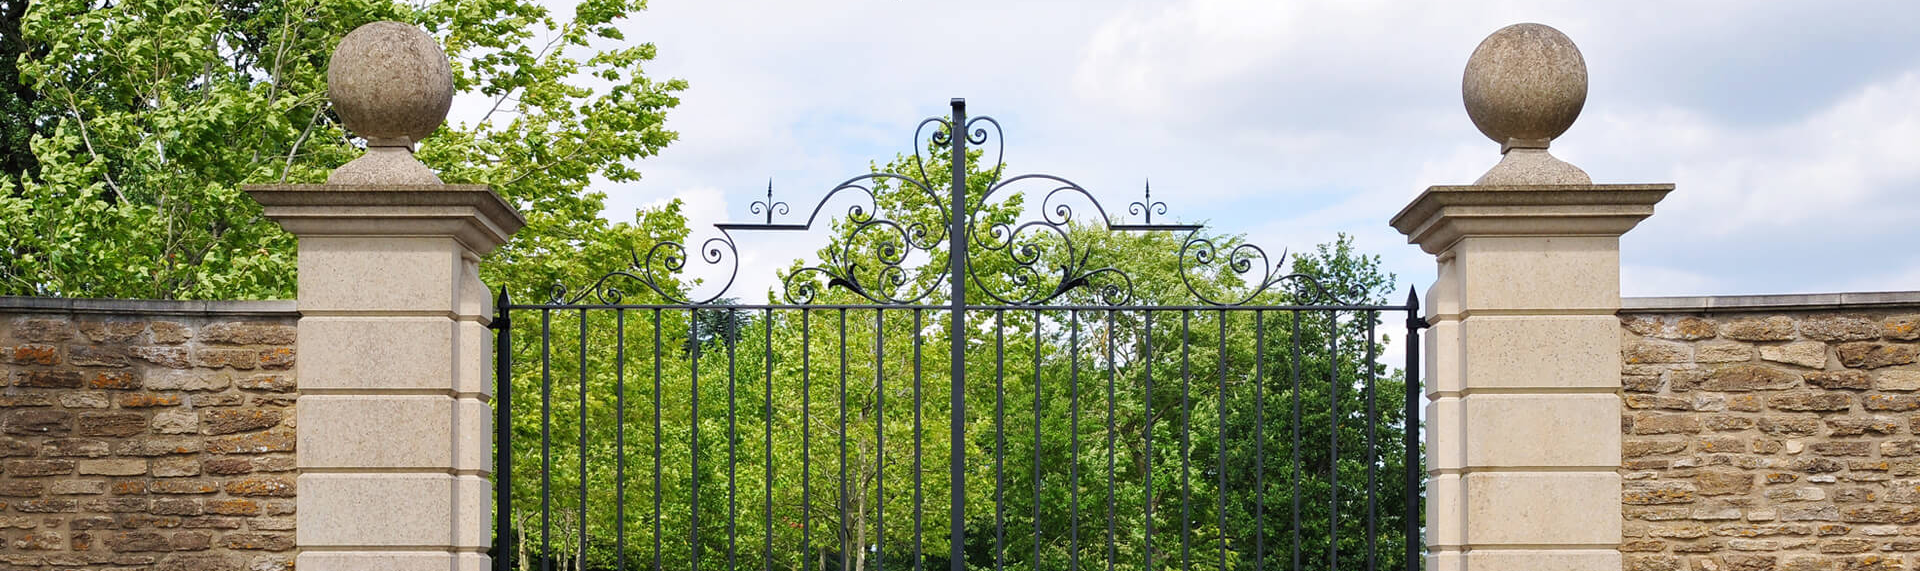 view of upper half of metal gates and stone pillars